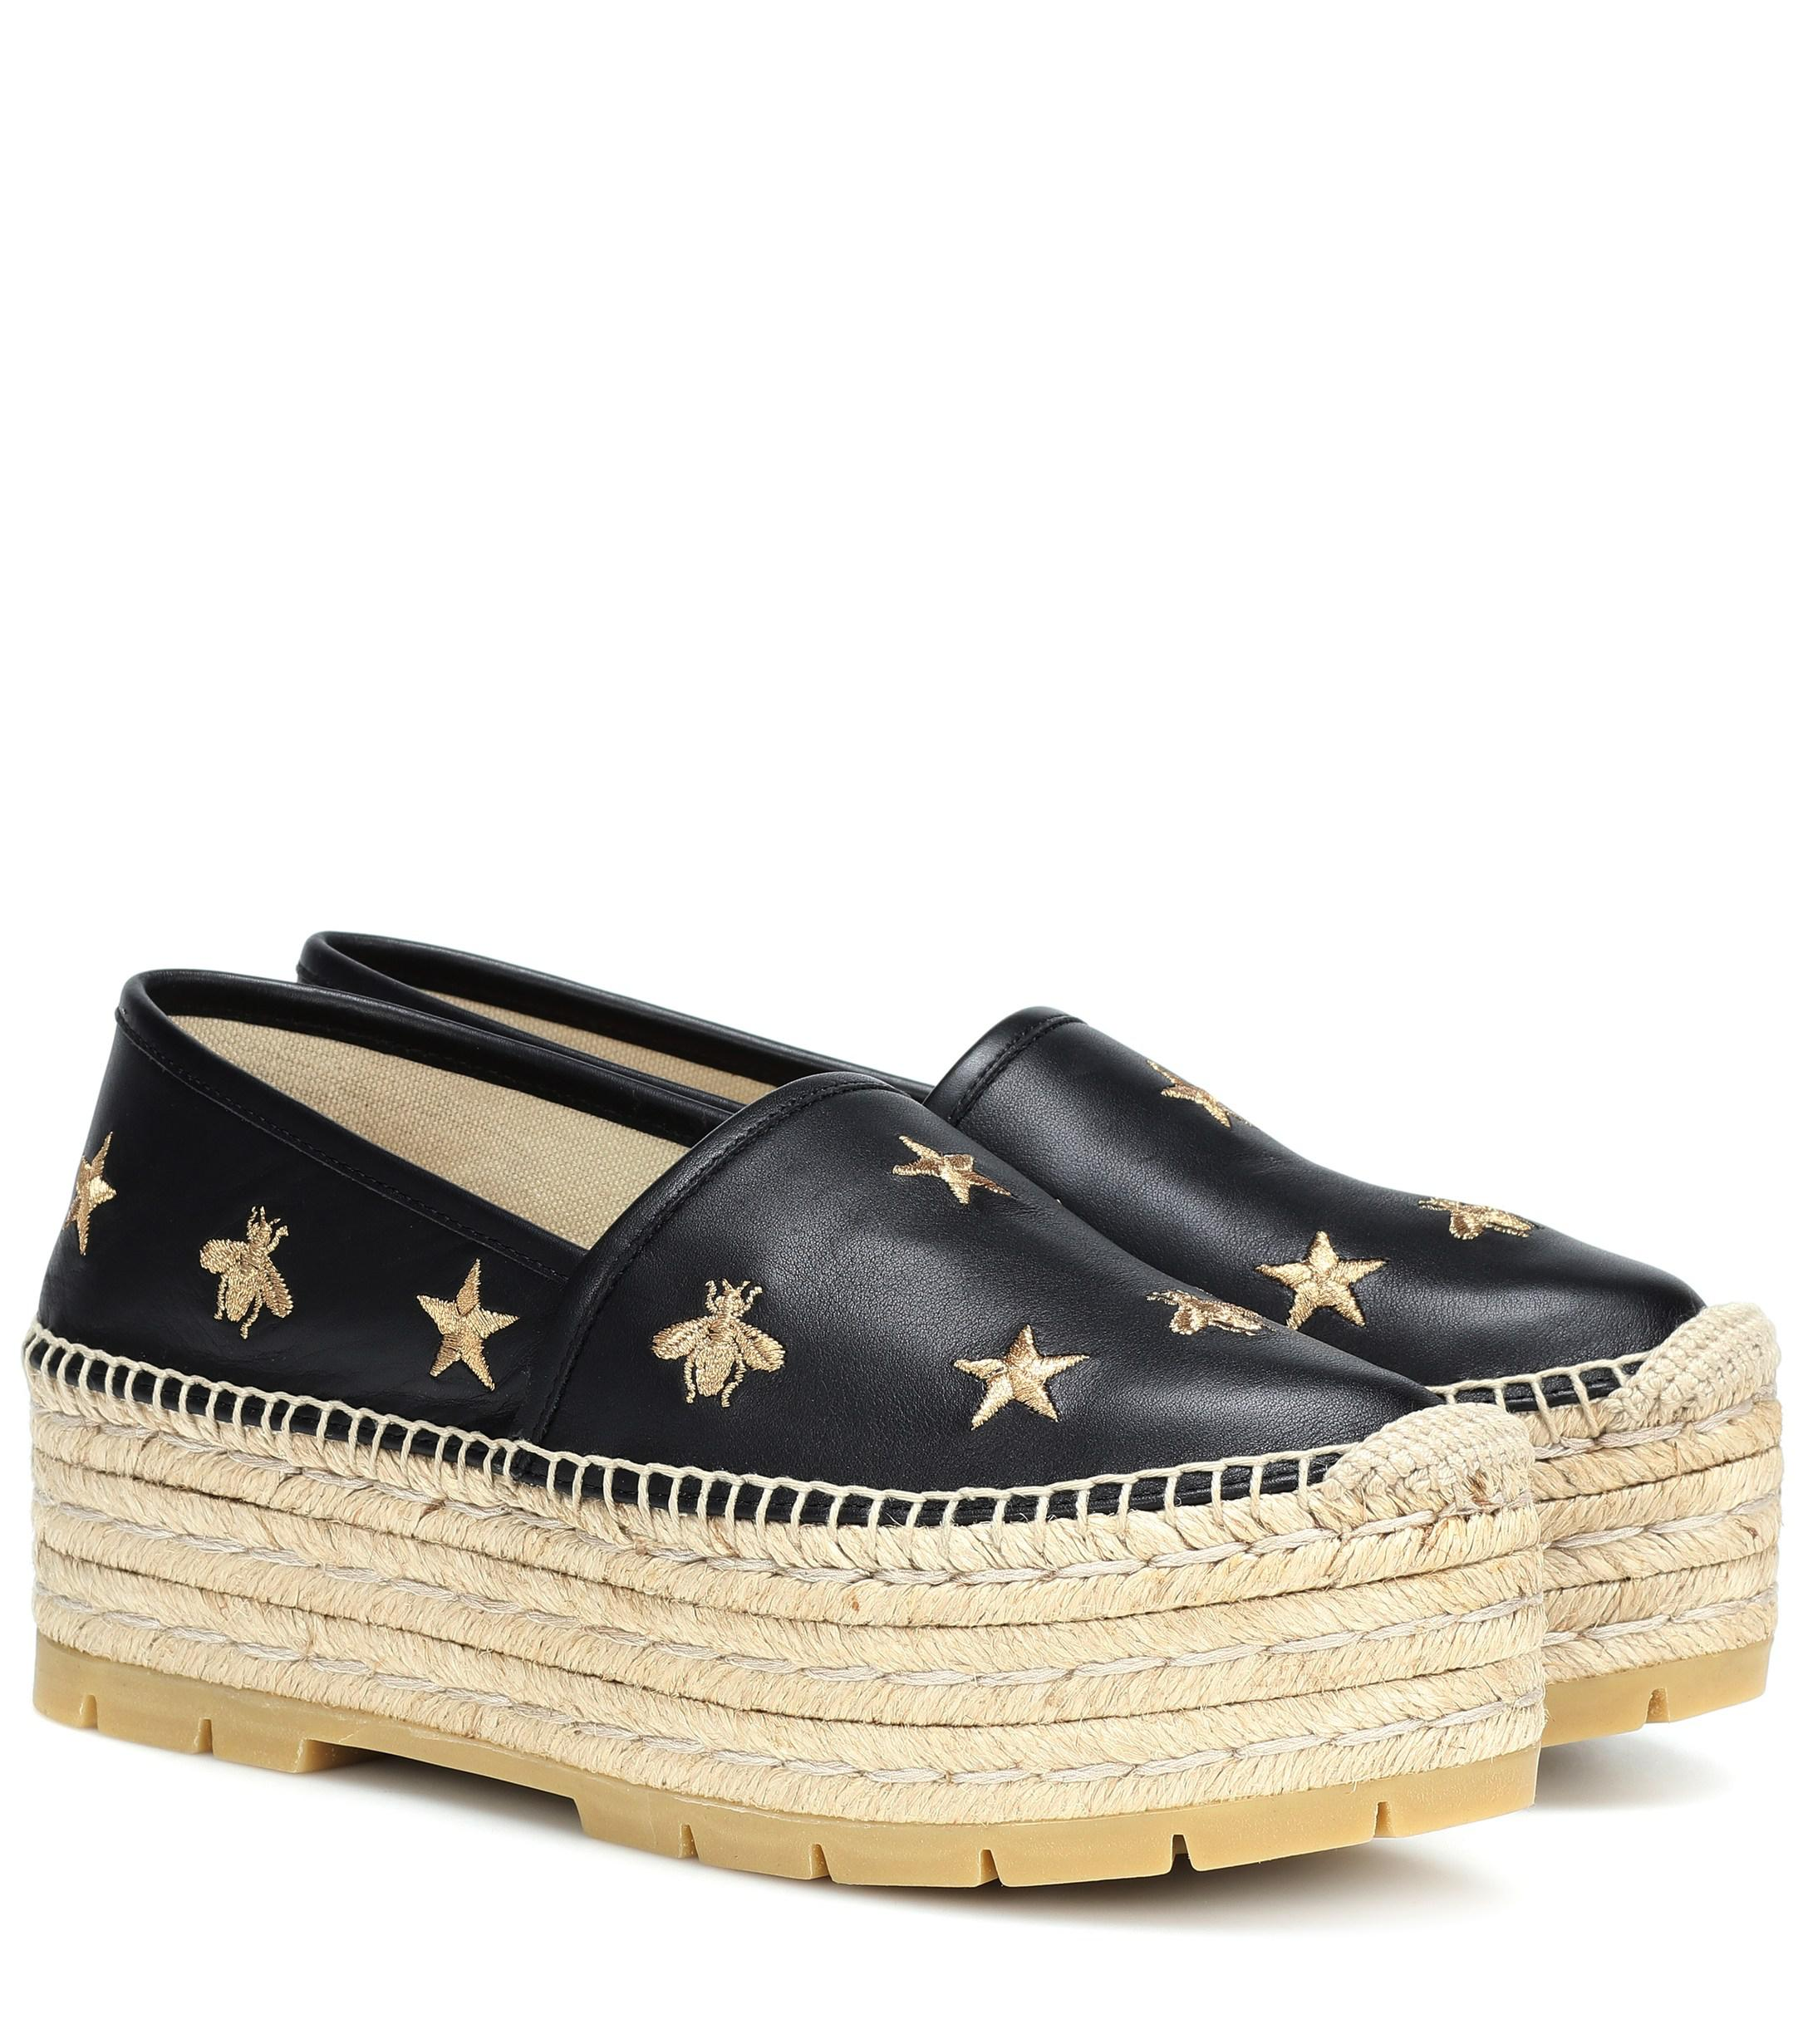 37bf336705c Lyst - Gucci Bee And Star Embroidered Espadrilles in Black